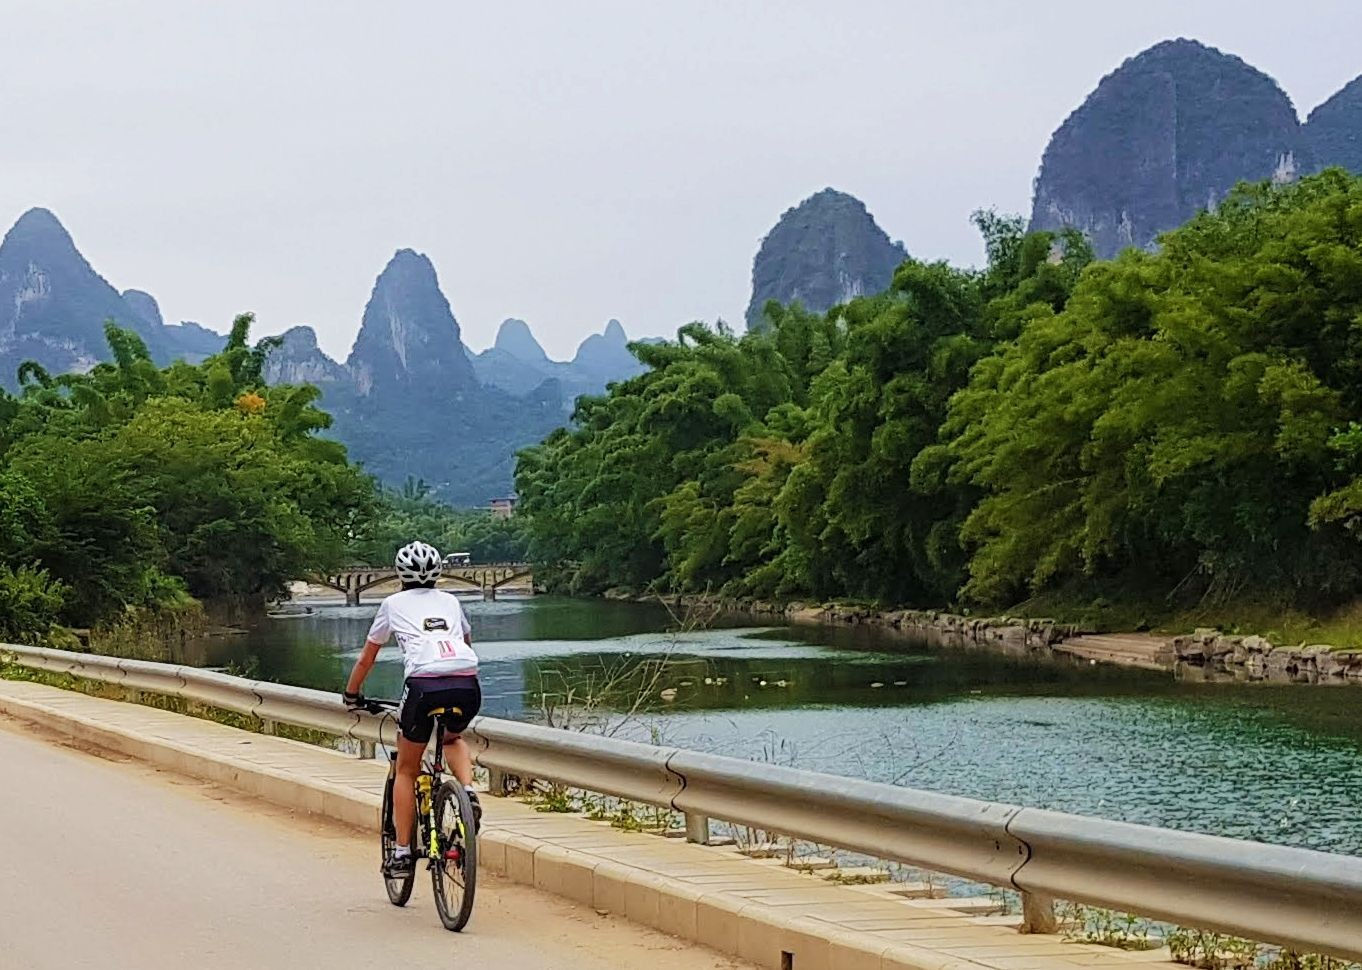 20171016_154644 copy.jpg - China - Guilin and Guangxi - Cycling Adventures